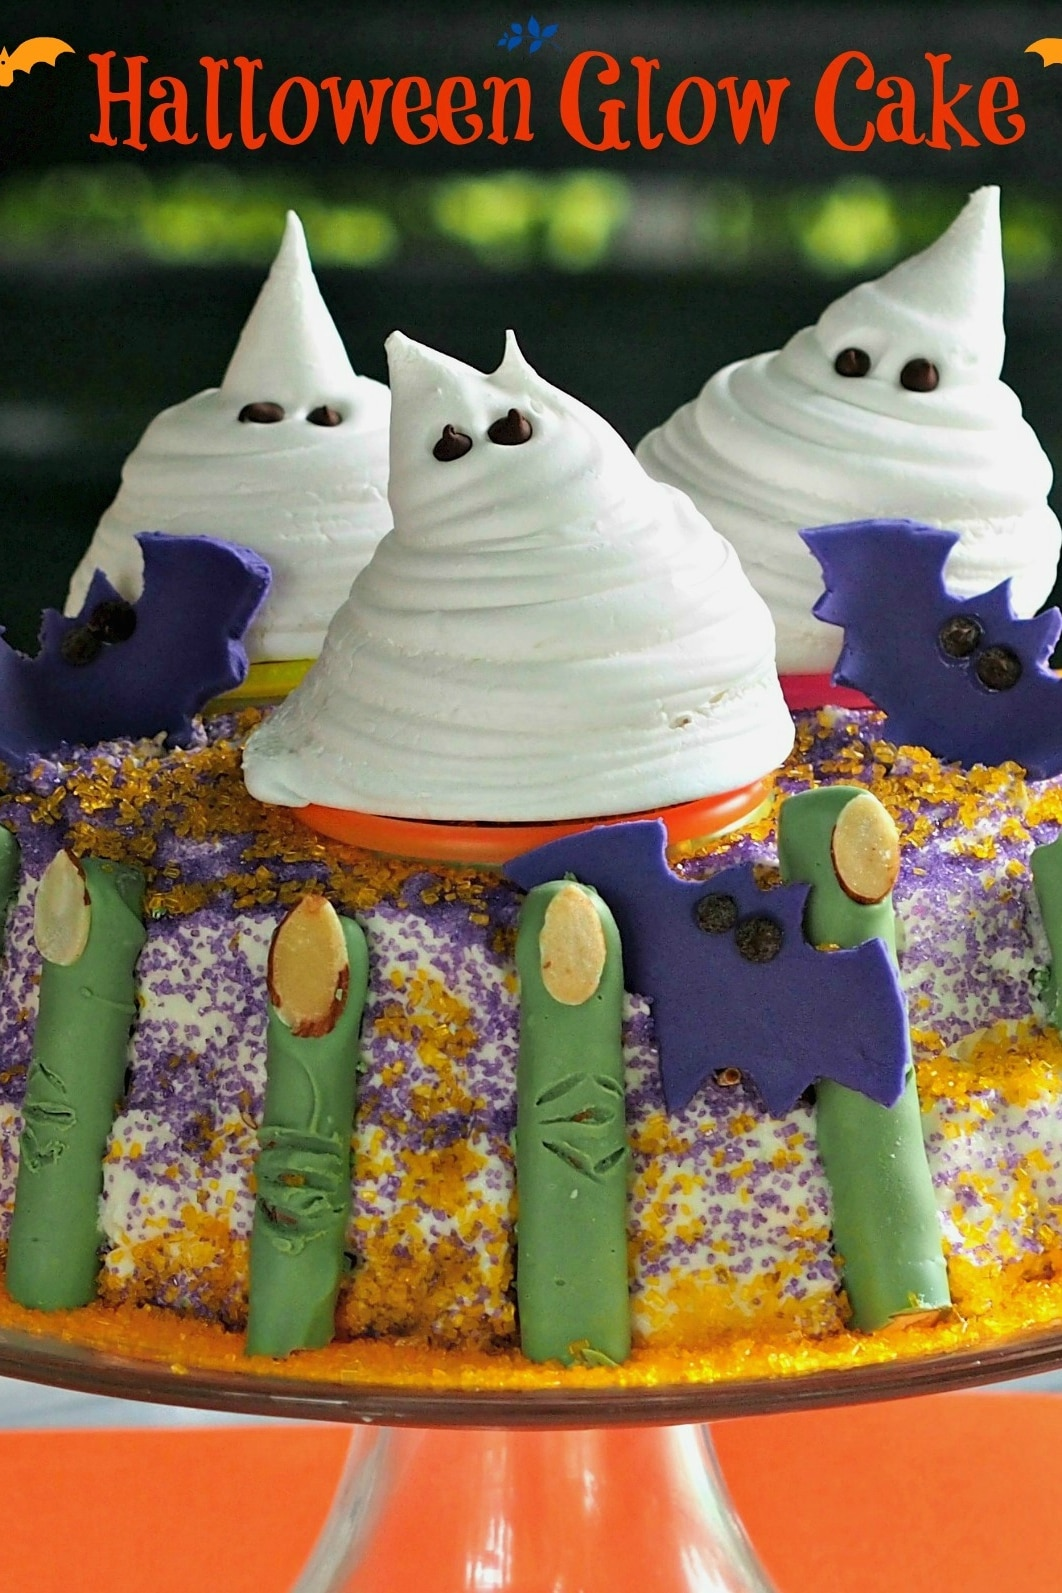 Halloween Glow Cake-lots of fun treats come together to create a dessert all guests will love. simplysated